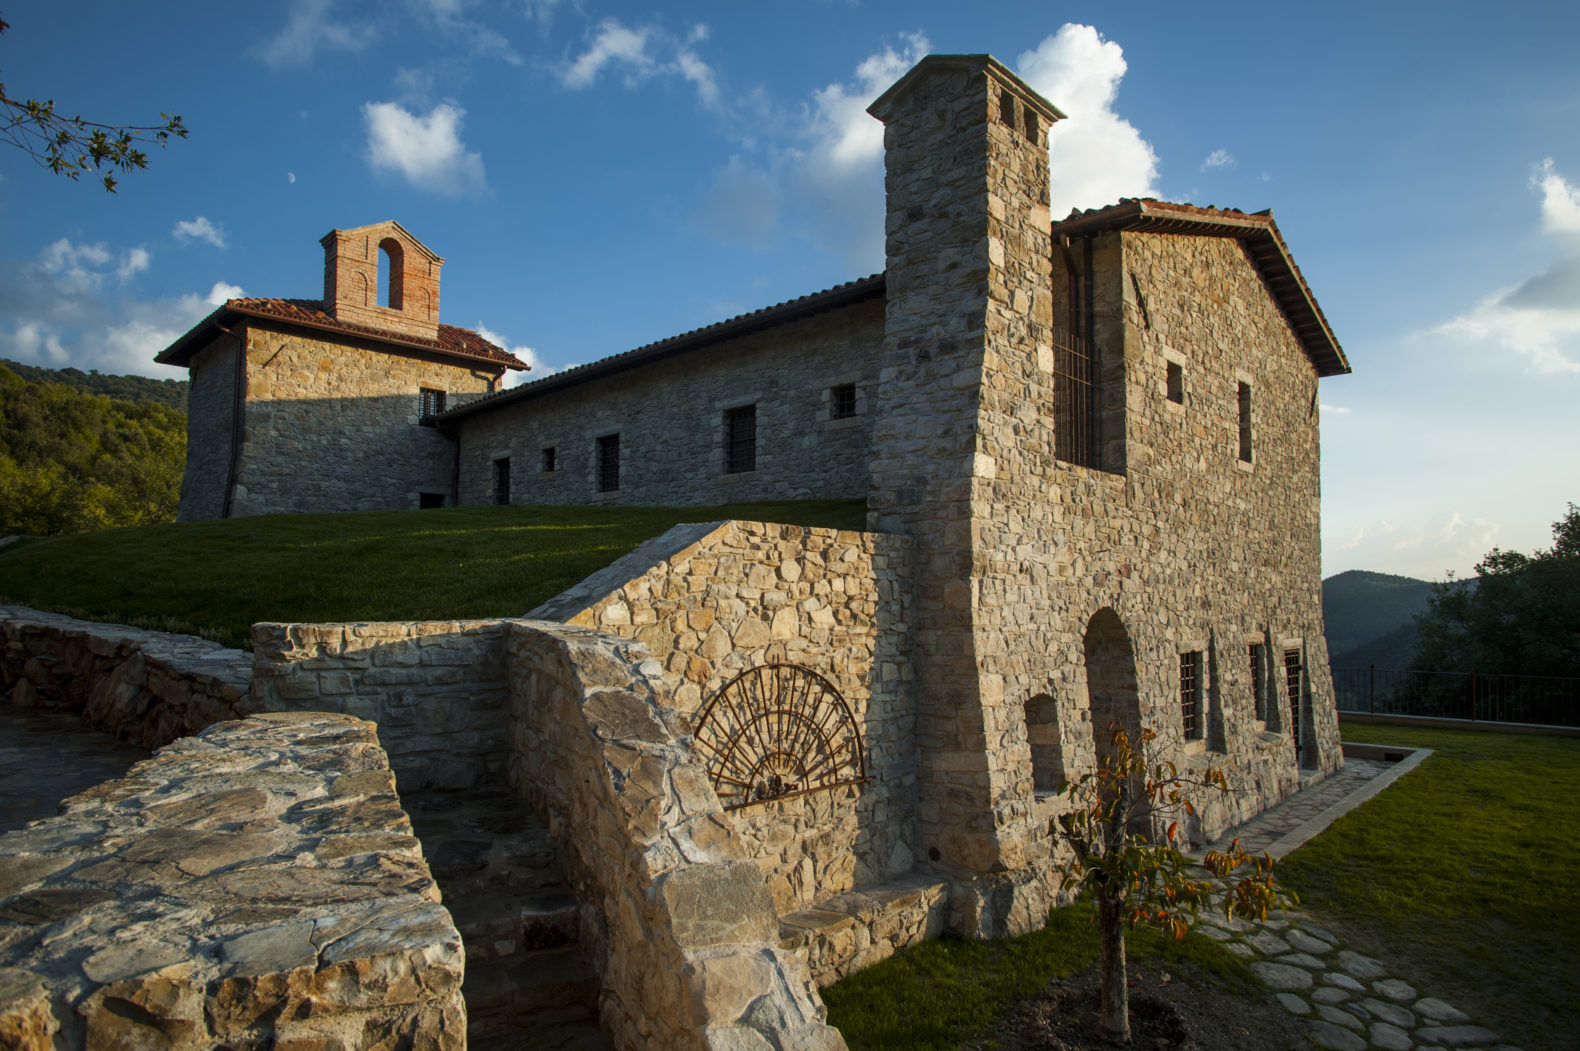 Historic-building-outside-walls-garden-hill-eremito-italy